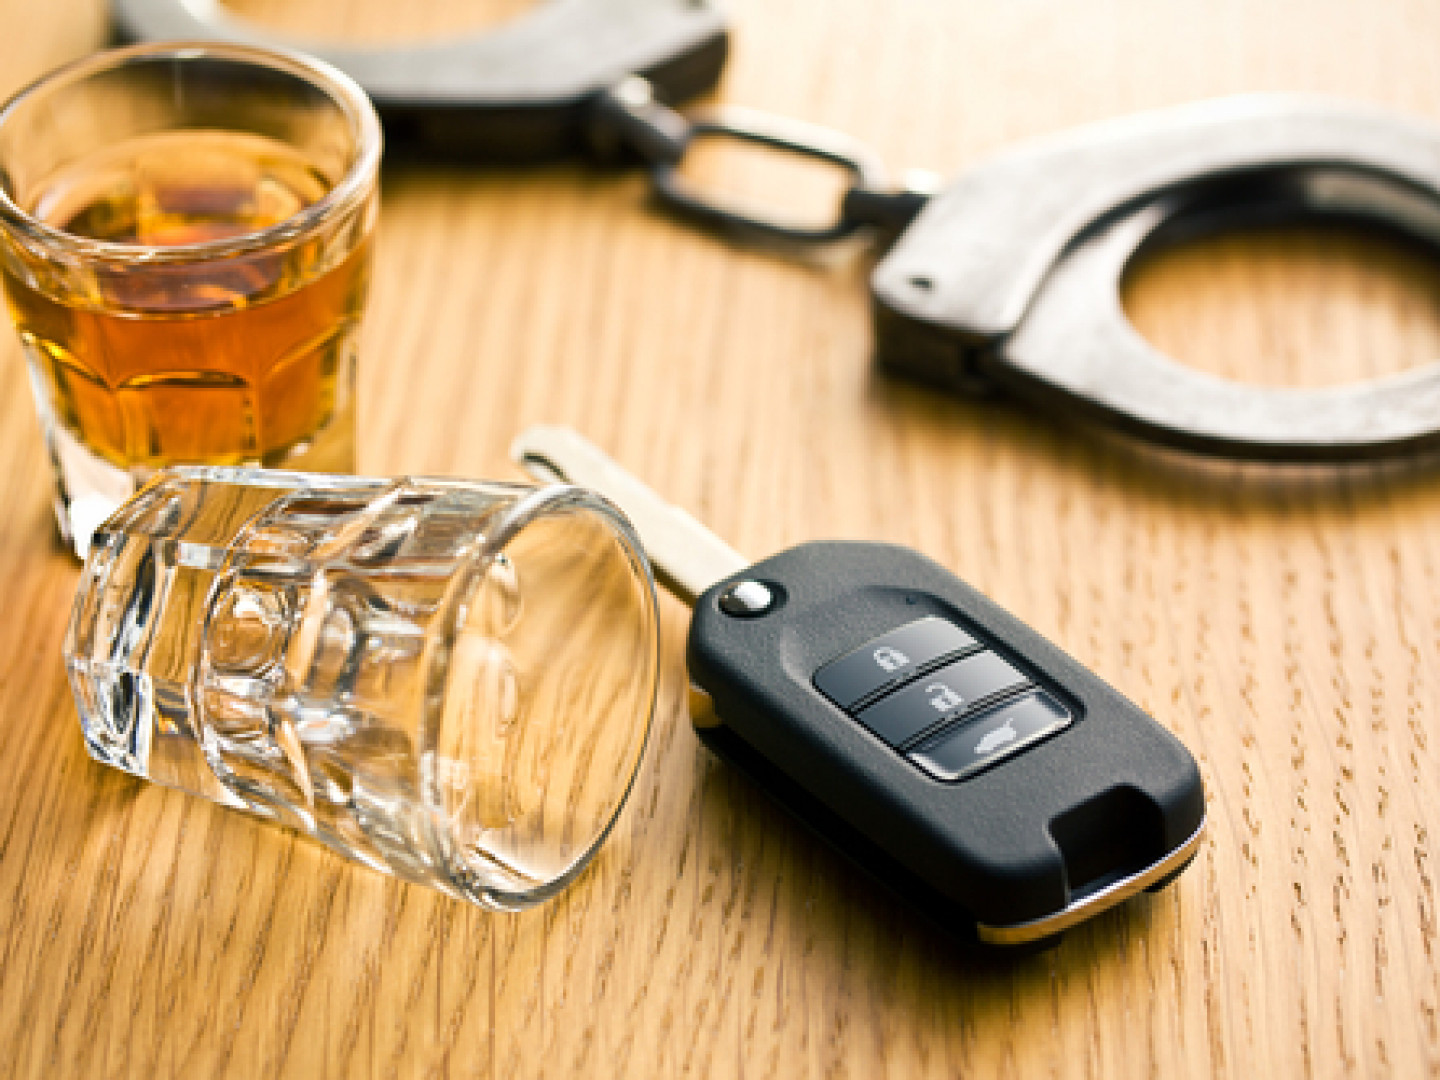 Were You Accused of a DWI in Cherry Hill, NJ?